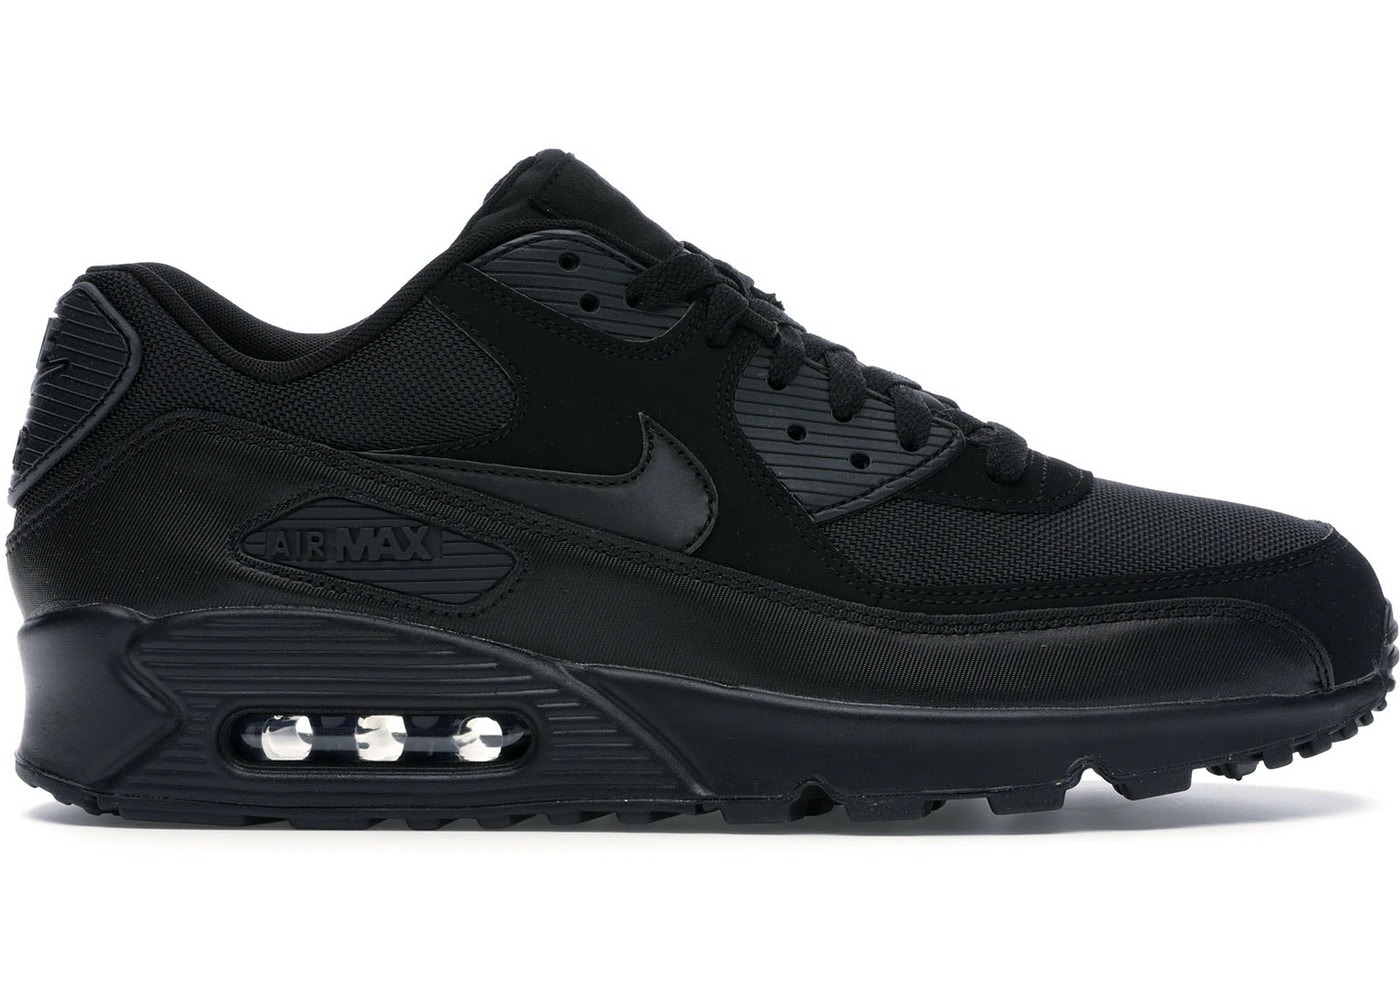 low priced 2804b c3b64 Air Max 90 Triple Black (2018)